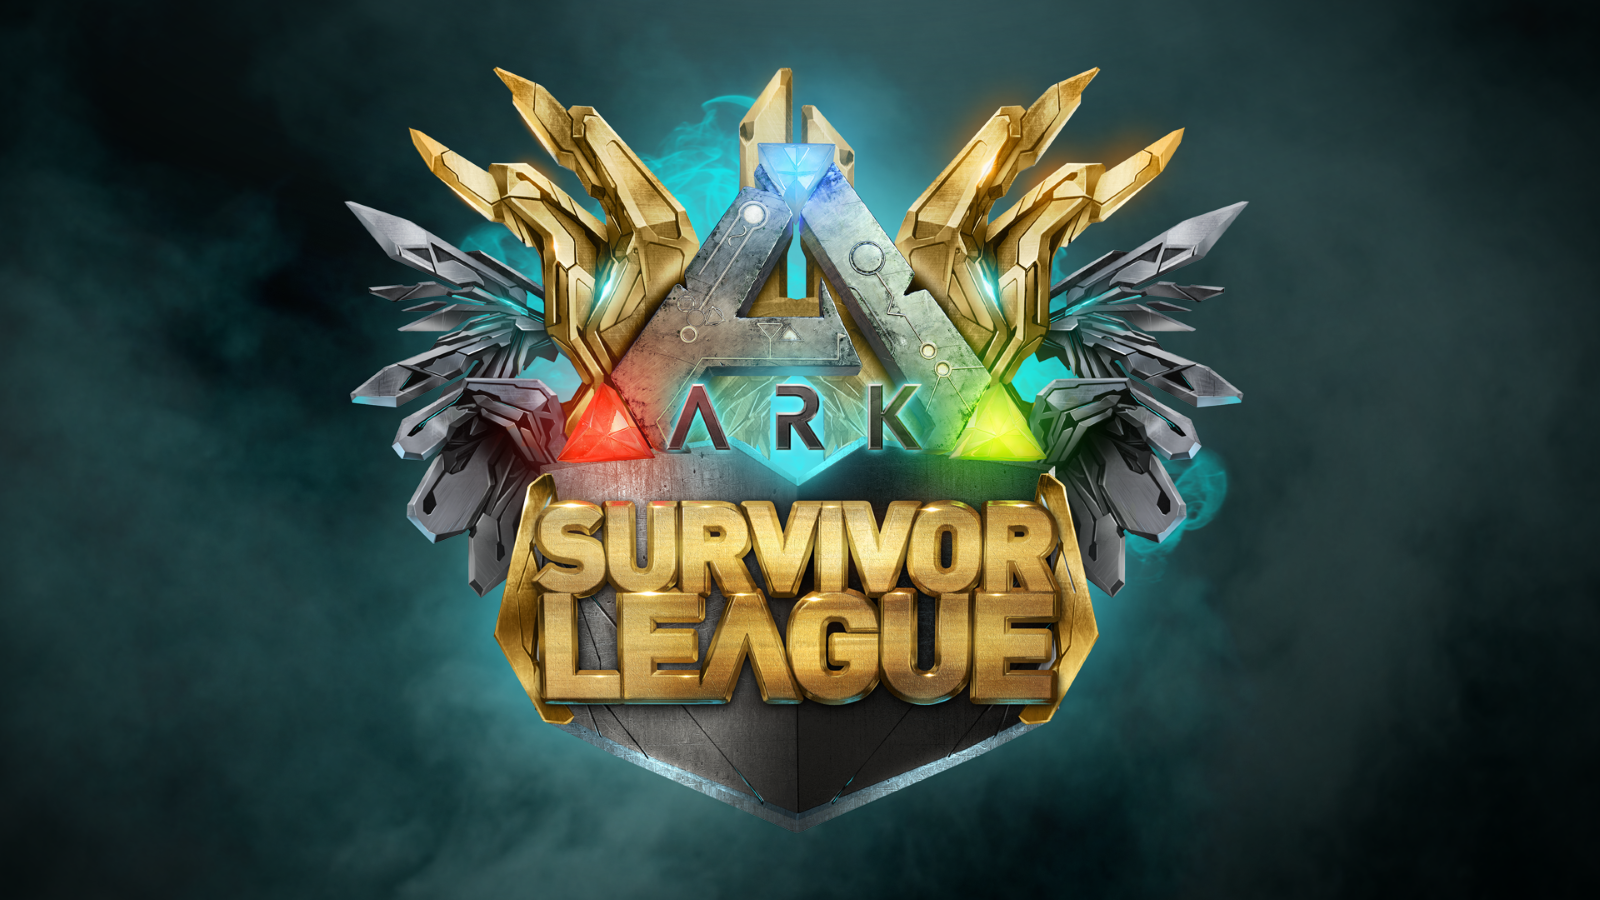 ARK: Survivor League